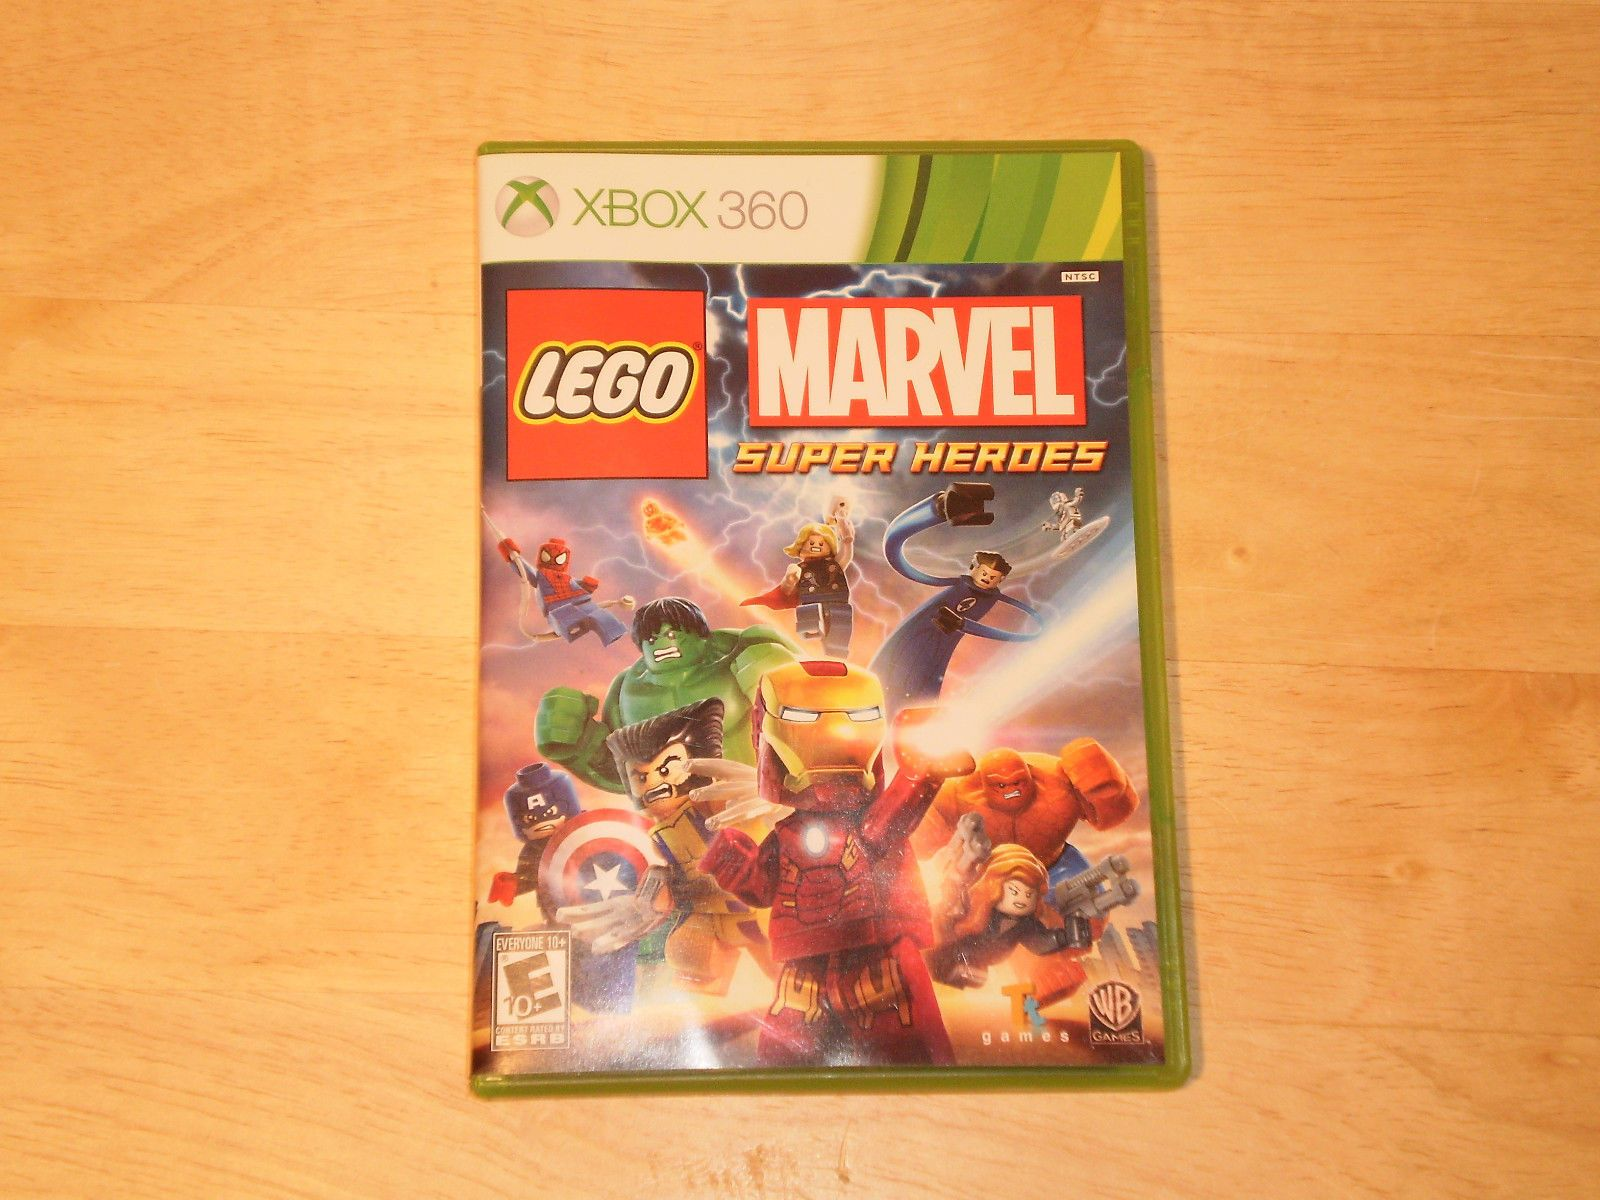 LEGO Marvel Super Heroes (Microsoft Xbox 360 2013) https://t.co/DgZEokOLLO https://t.co/Ao7japlhSd